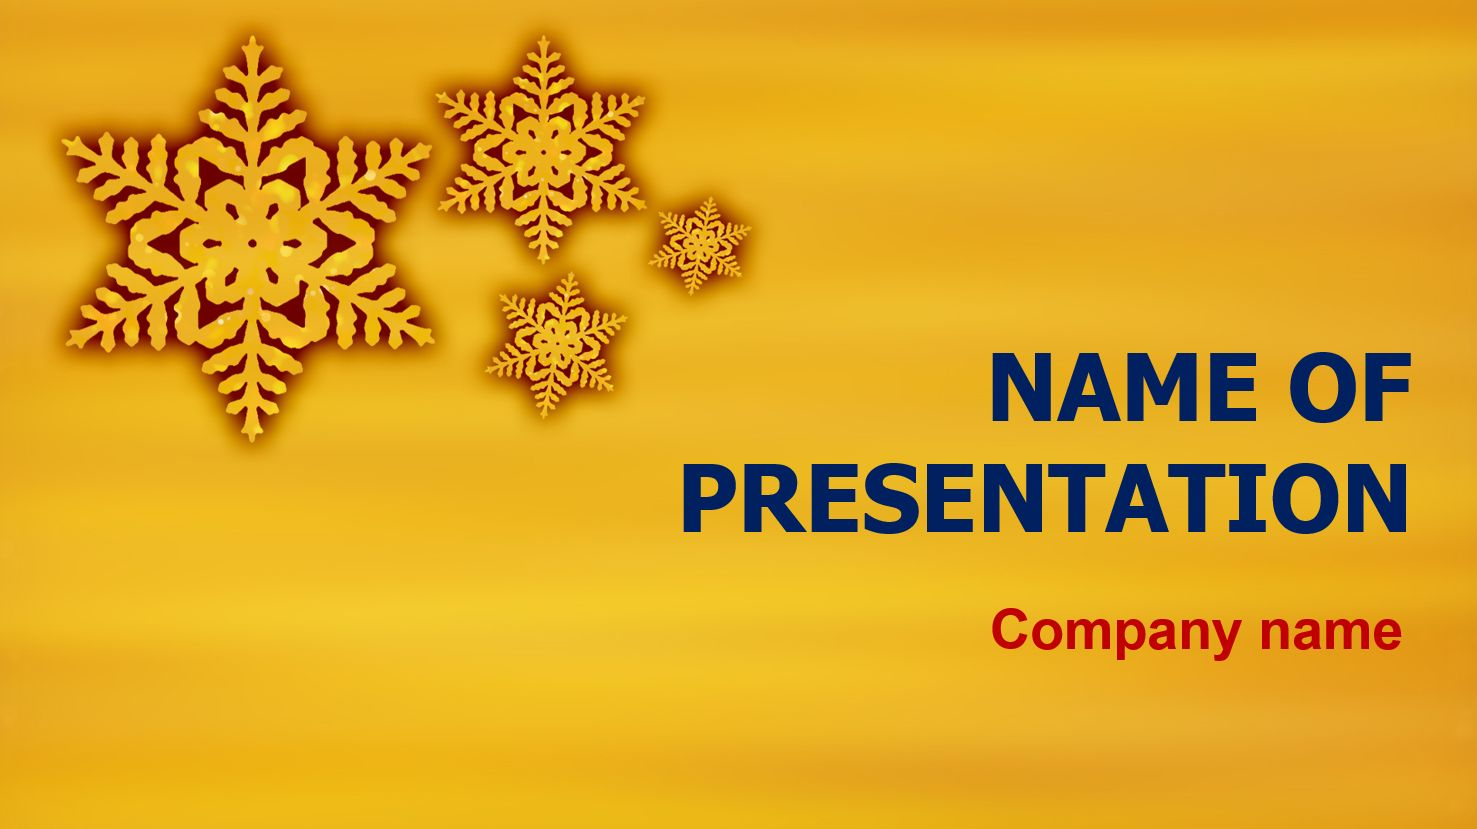 Free gold snowflakes powerpoint theme this beautiful and creative free gold snowflakes powerpoint theme this beautiful and creative powerpoint theme will be a great toneelgroepblik Image collections